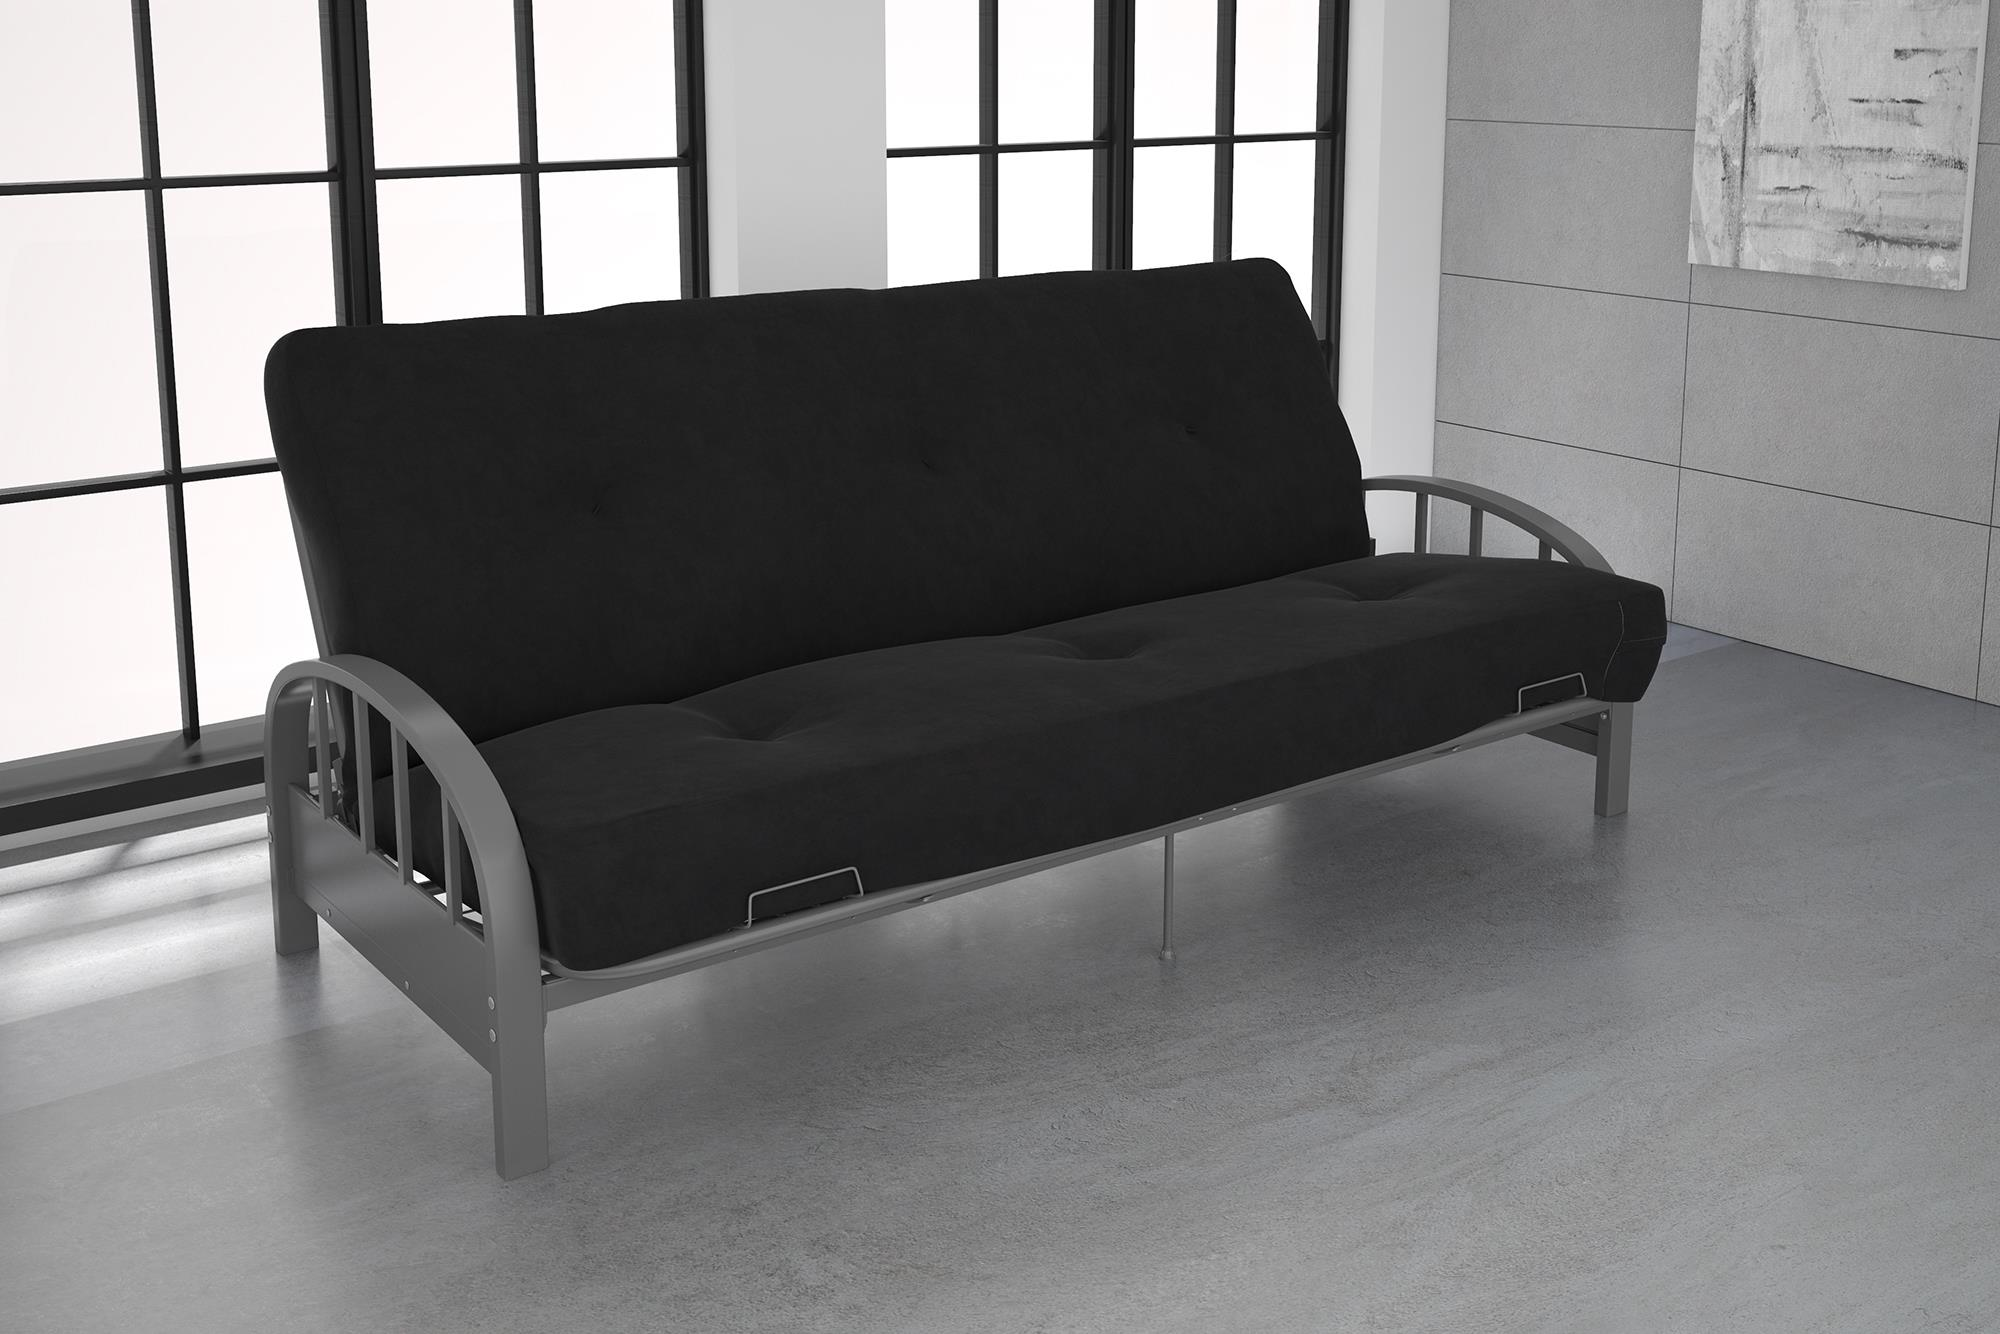 DHP Aiden Silver Metal Futon Frame with Coil Full Futon Mattress, Multiple Colors and Sizes by Dorel Home Products